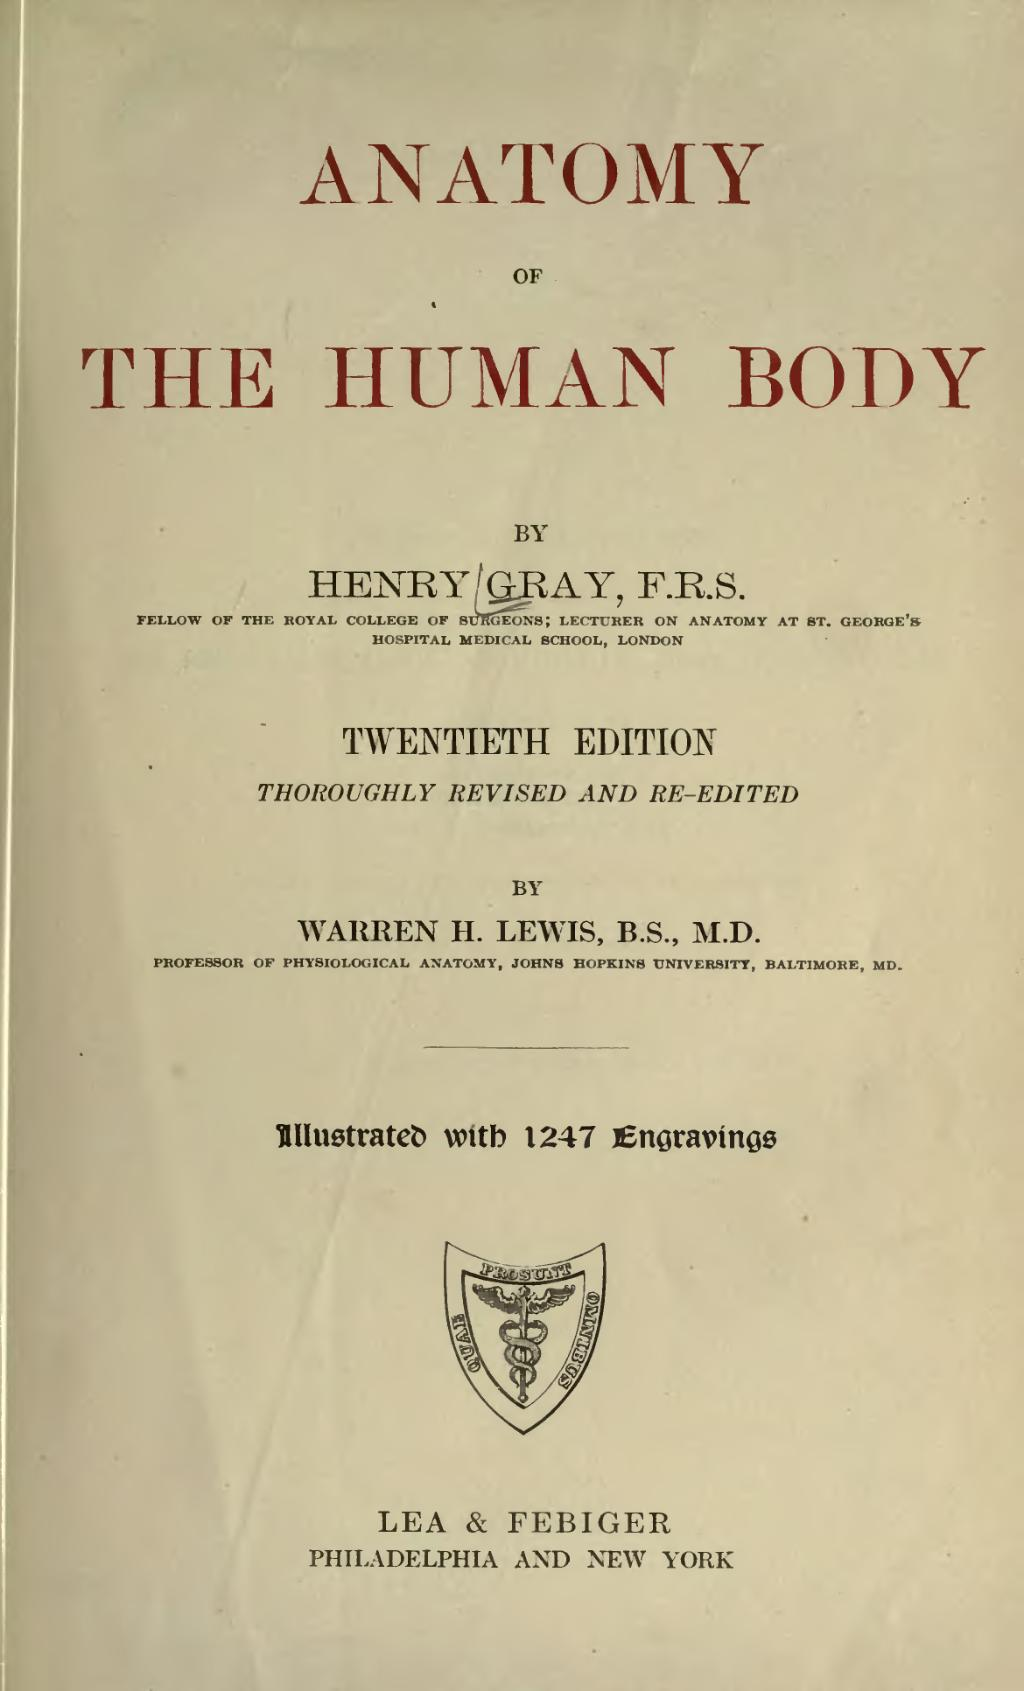 Pageanatomy Of The Human Bodylewis 1918vu7 Wikisource The